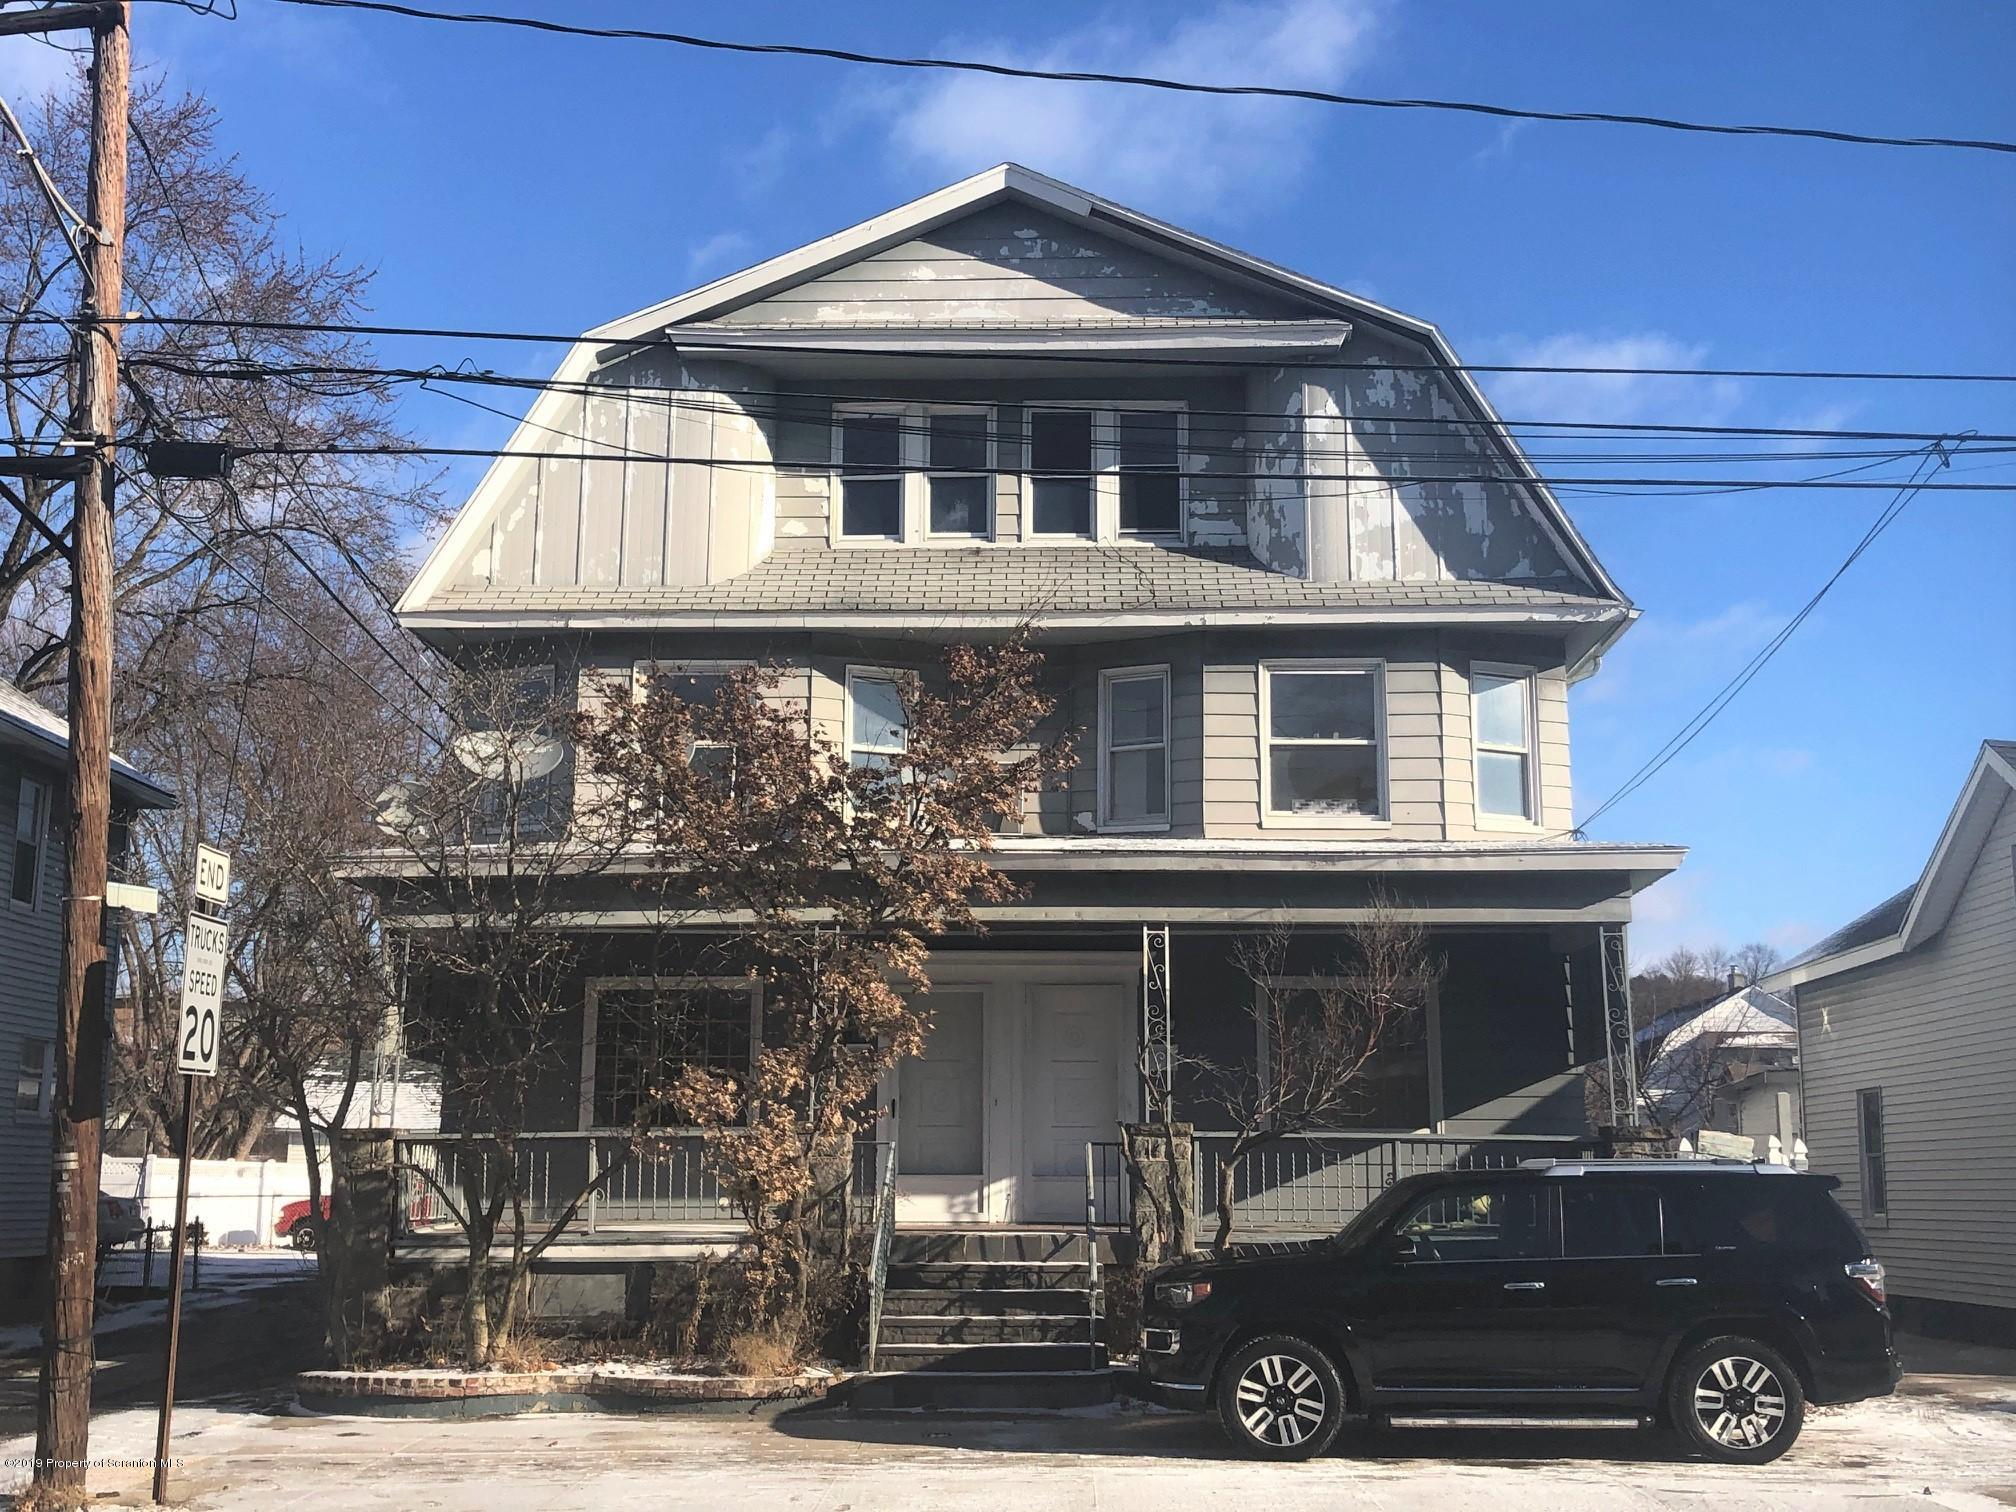 613 Moosic St, Scranton, Pennsylvania 18505, ,Multi-Family,For Sale,Moosic,19-5748